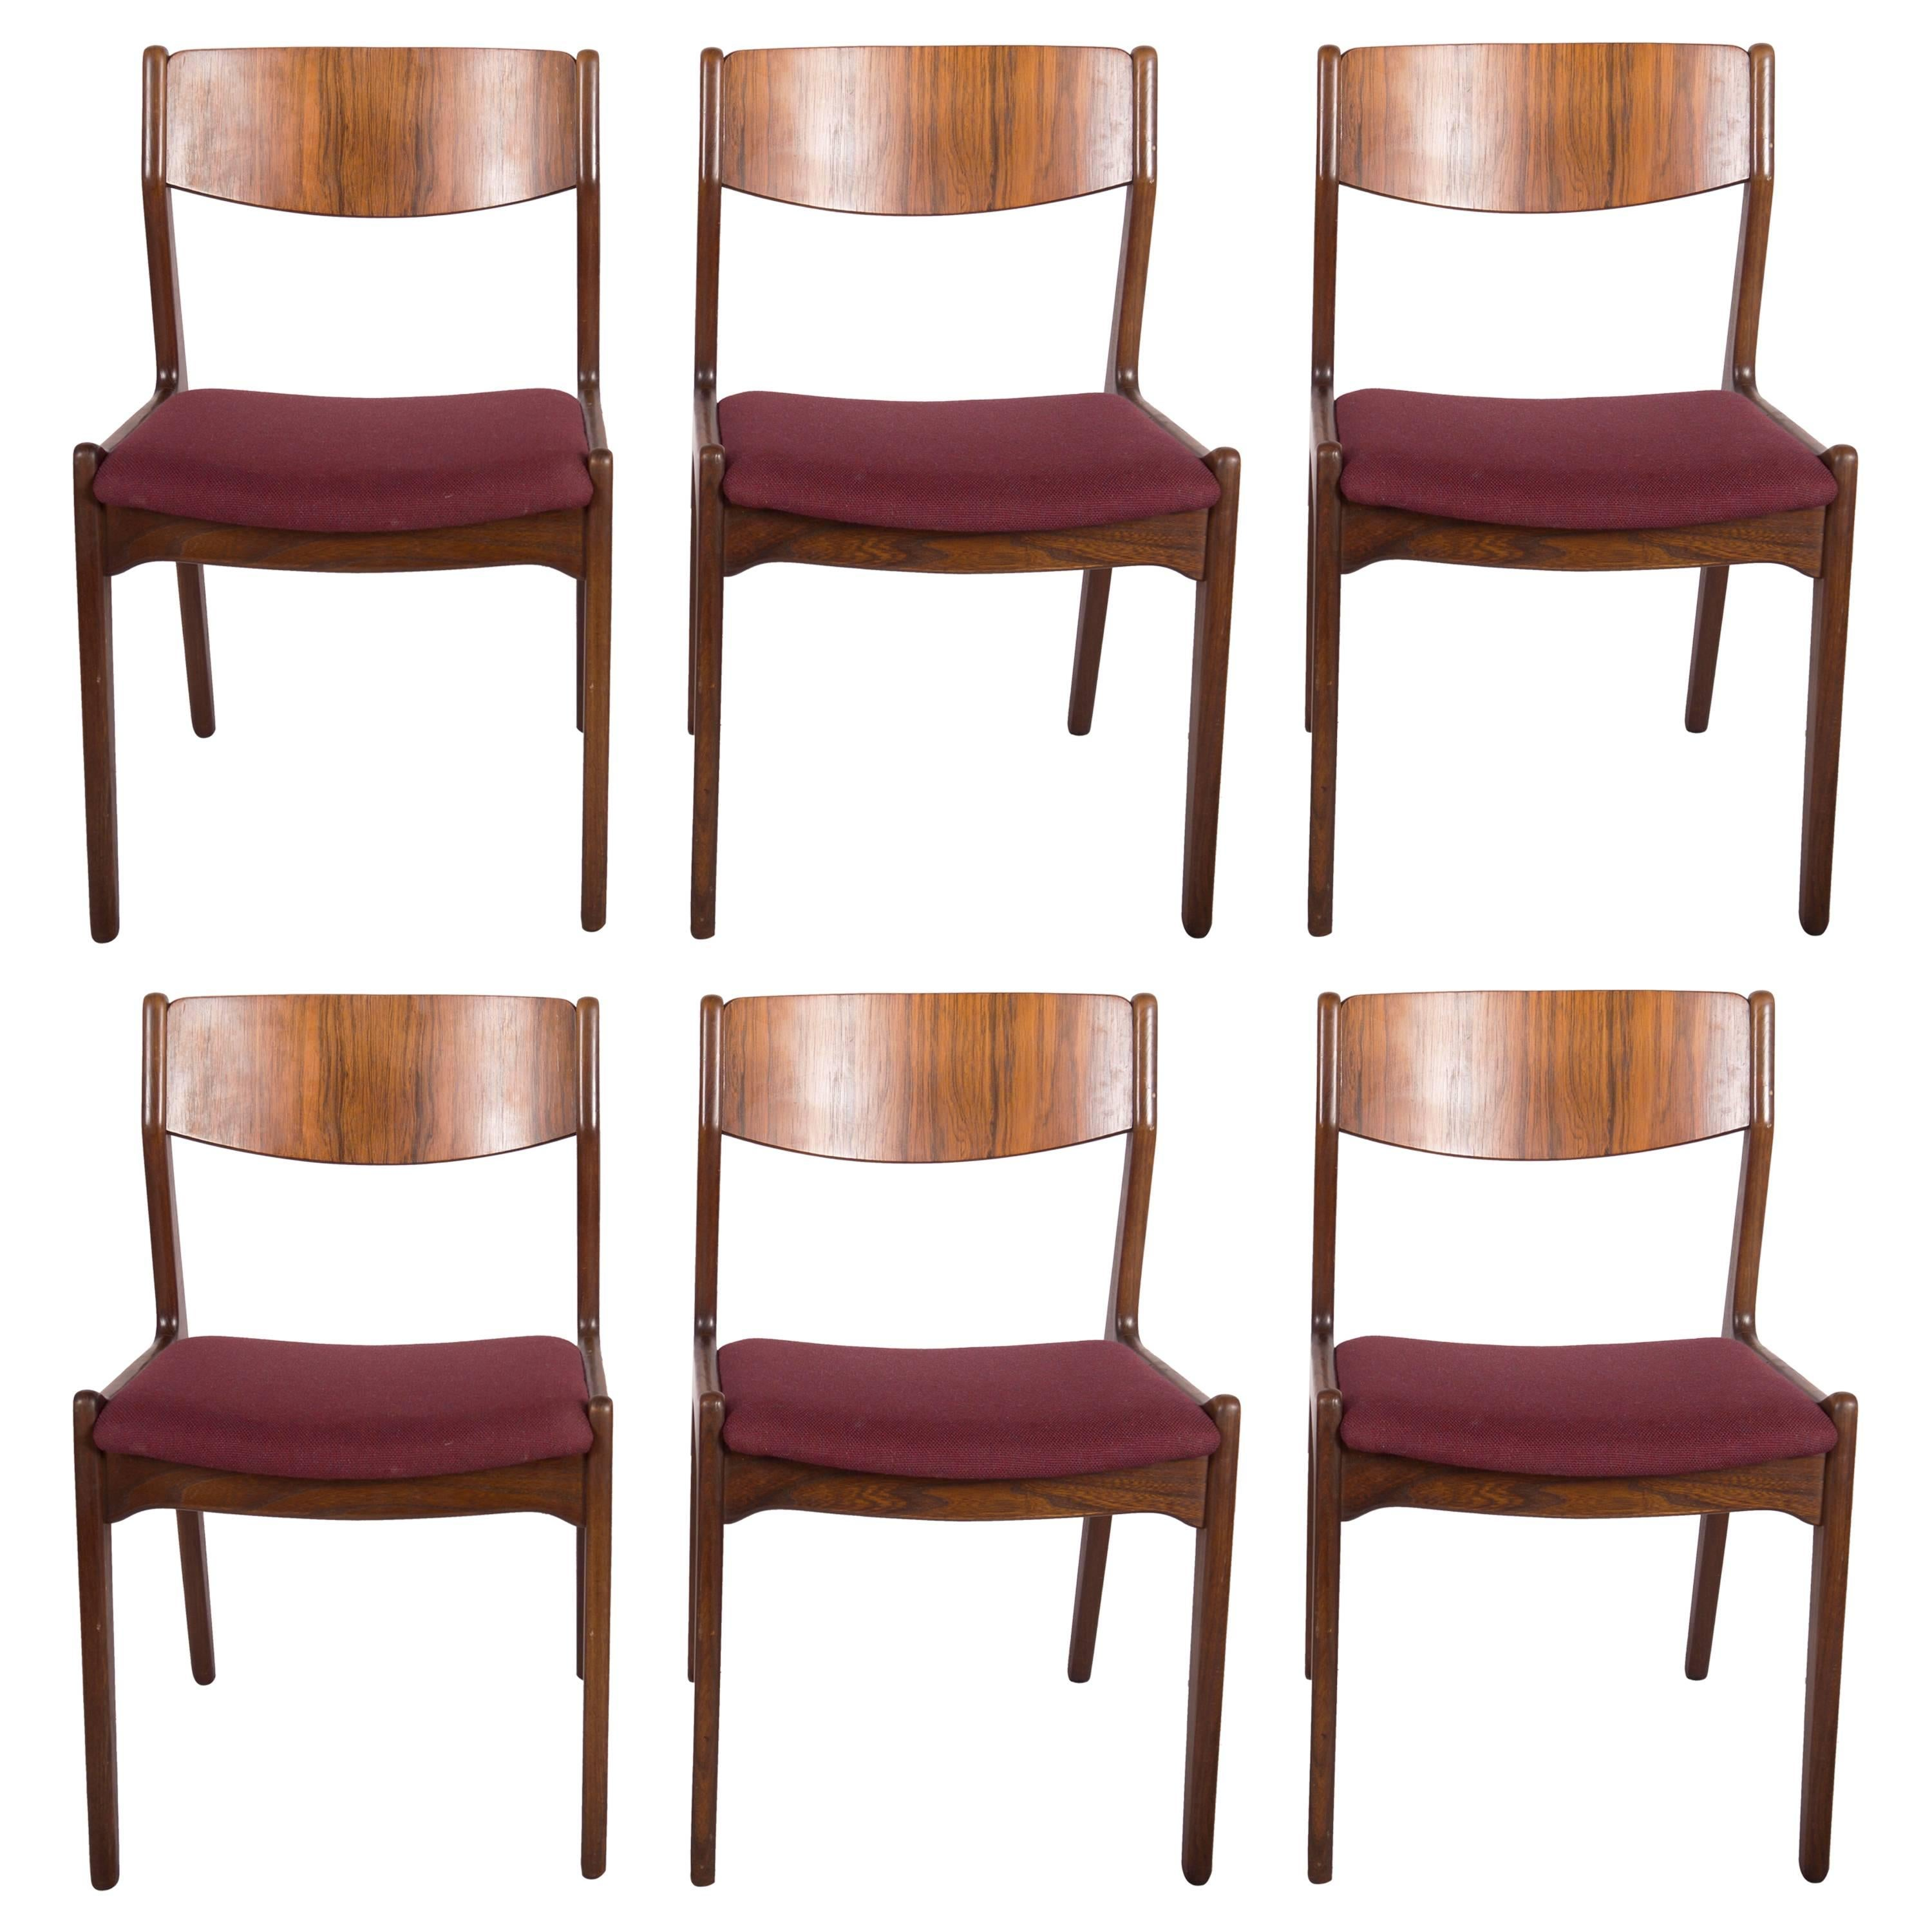 Set of Six Mid-Century Danish Dining Chairs